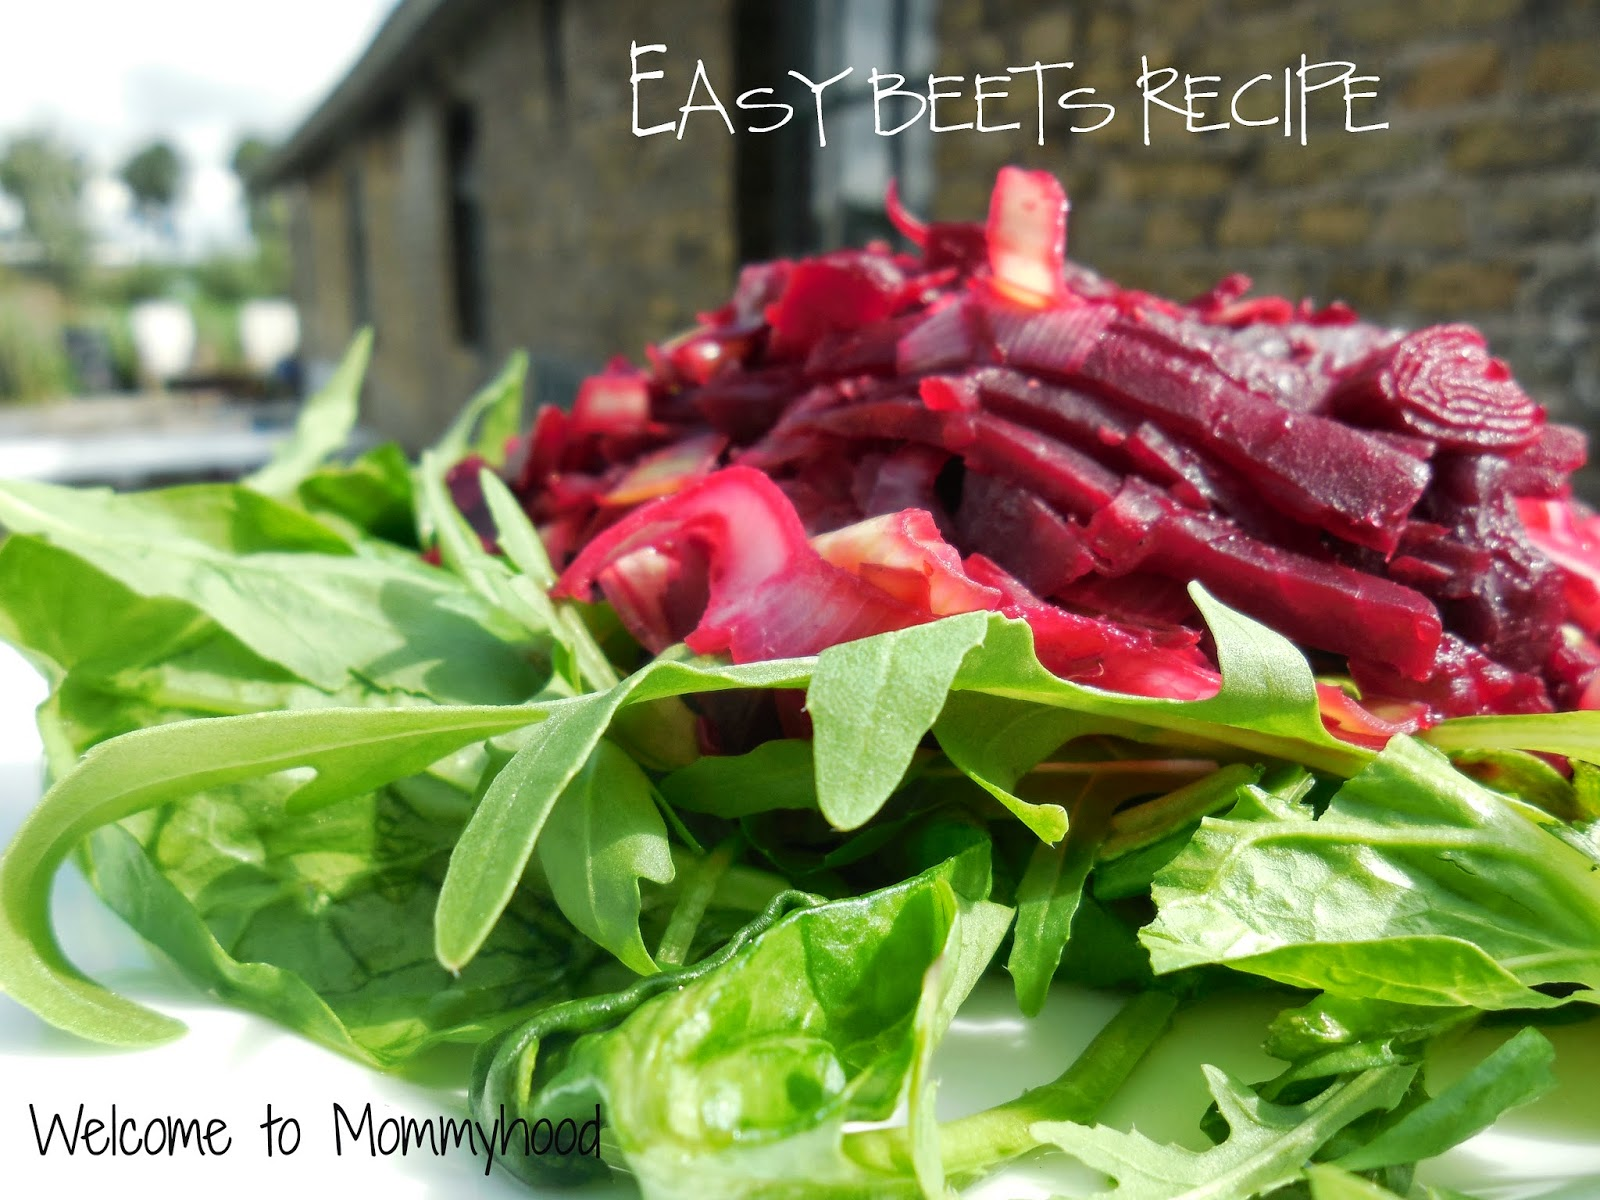 Easy Beets Recipe by Welcome to Mommyhood #paleo, #Whole30, #vegan, #vegetarian, #EasyBeetsRecipe